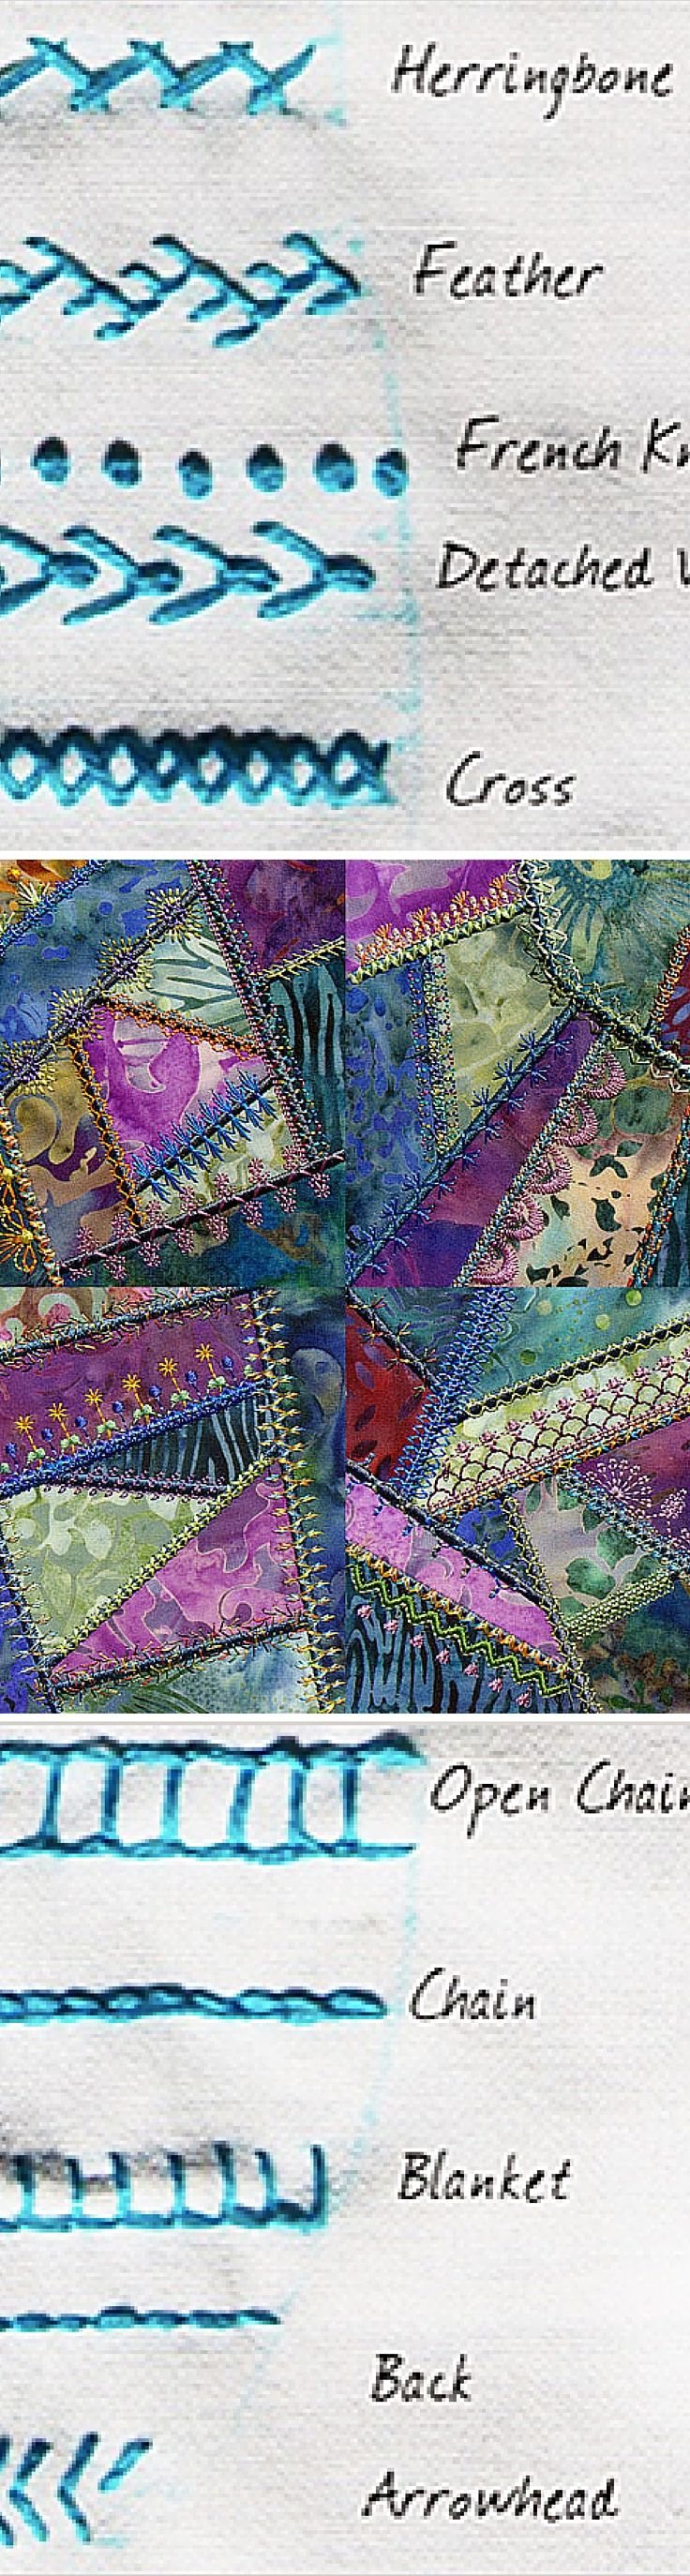 Learn Decorative Embroidery Stitches for Crazy Quilts